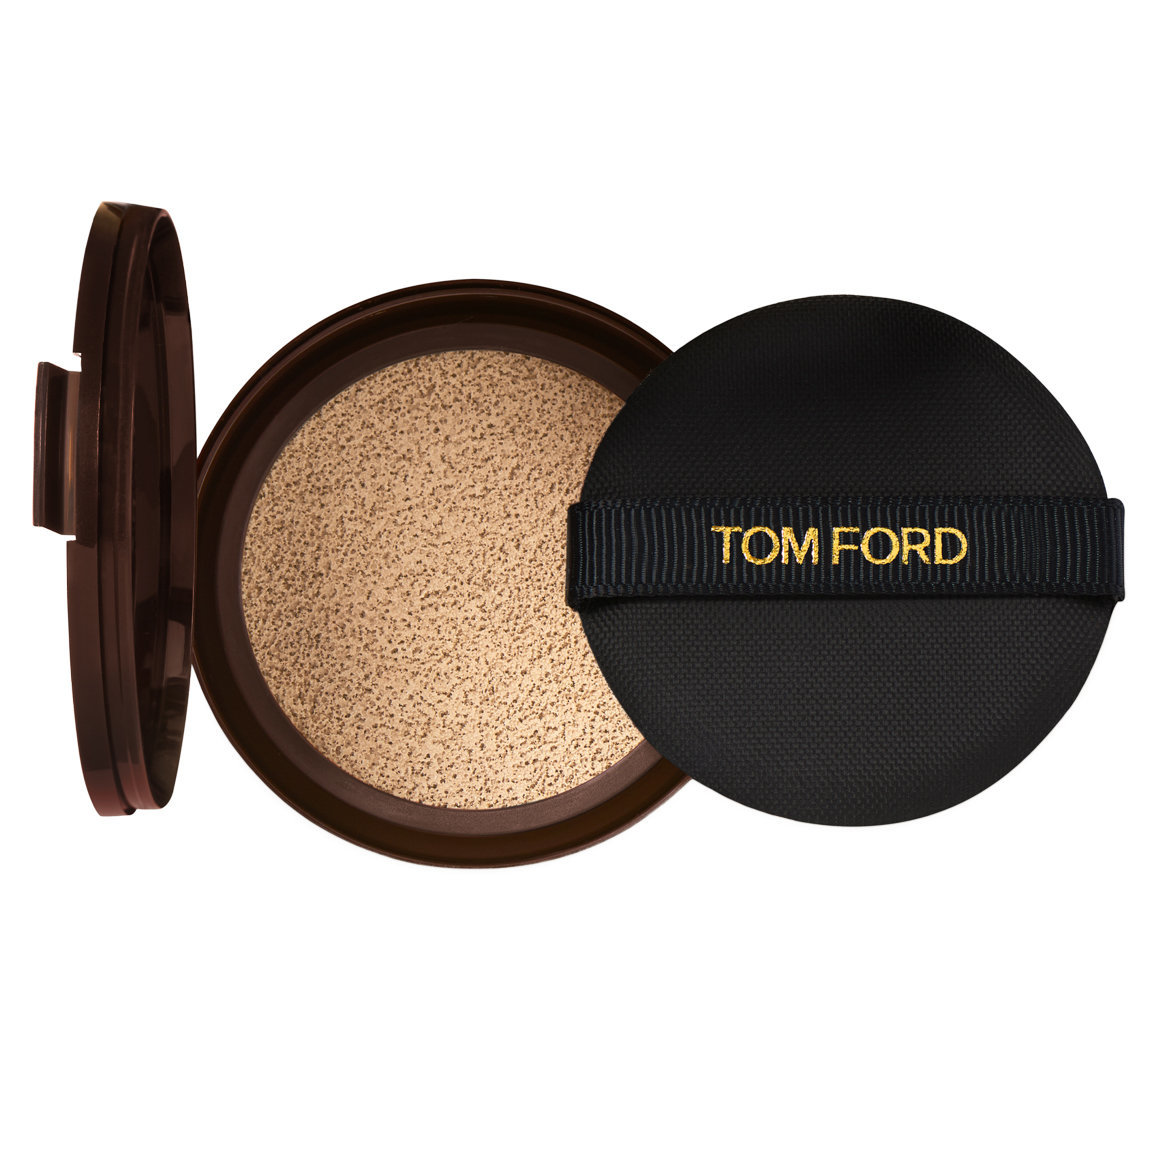 TOM FORD Shade and Illuminate Soft Radiance Foundation Cushion Compact Refill 1.1 Warm Sand alternative view 1.